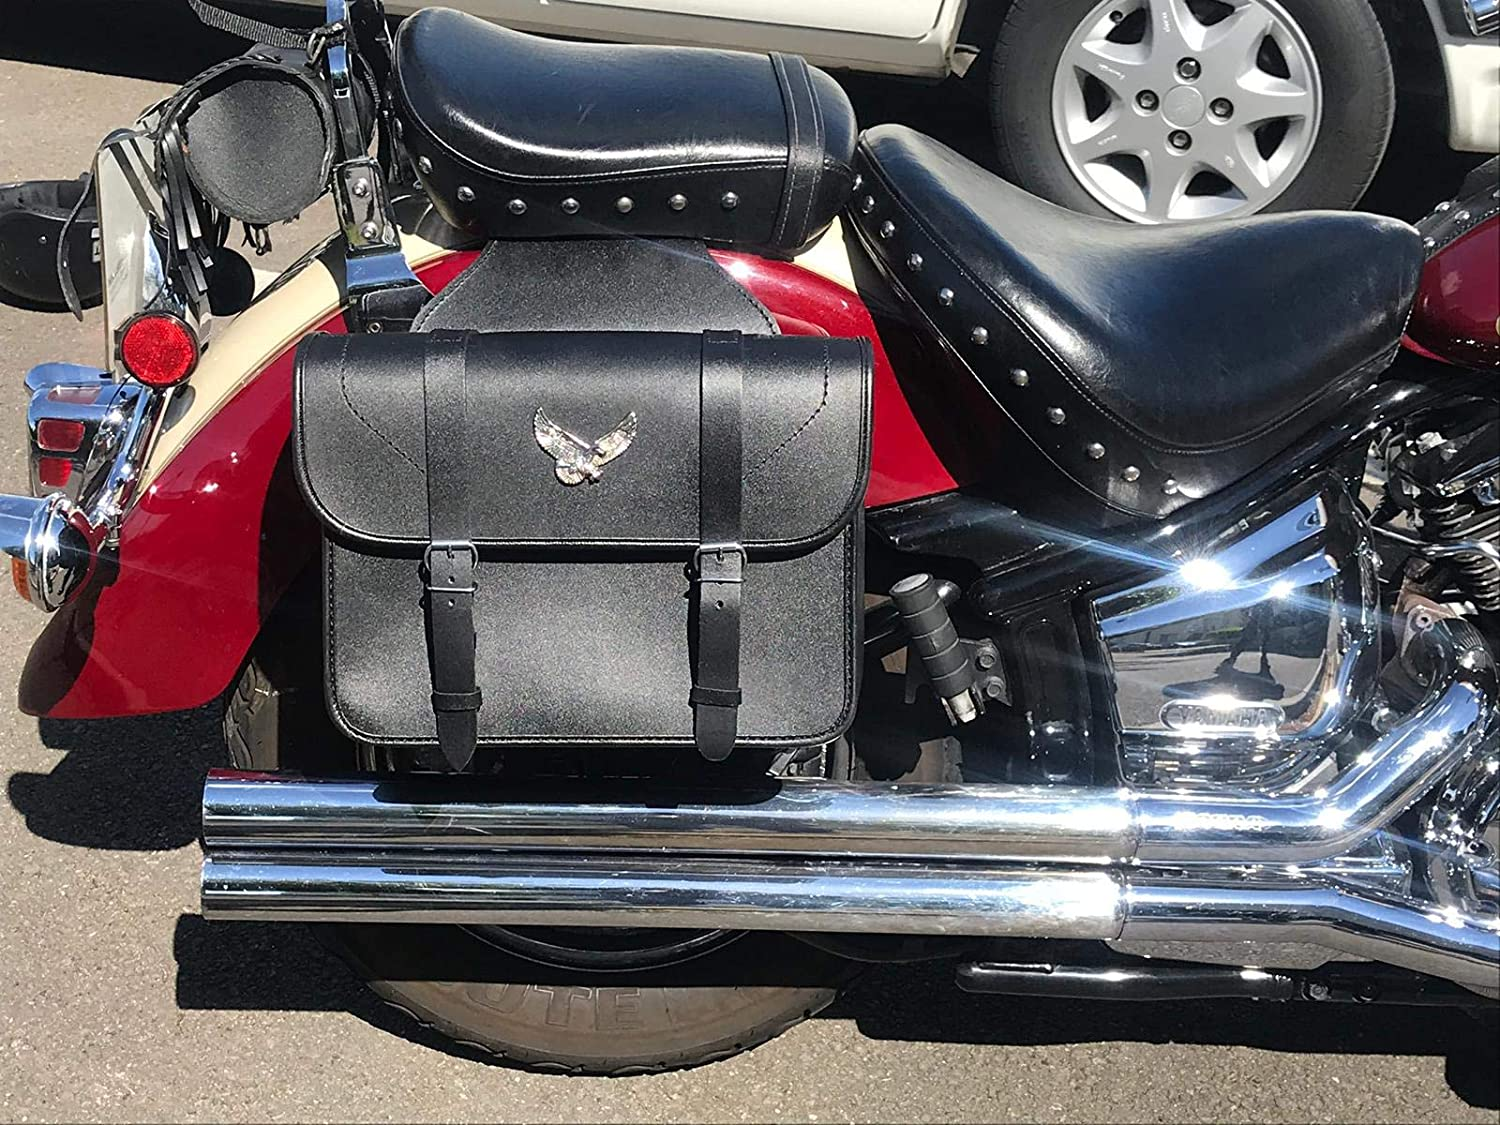 Explorer Motorbike Real Leather Saddle Bag Throw over style panniers Pair FREE KIT